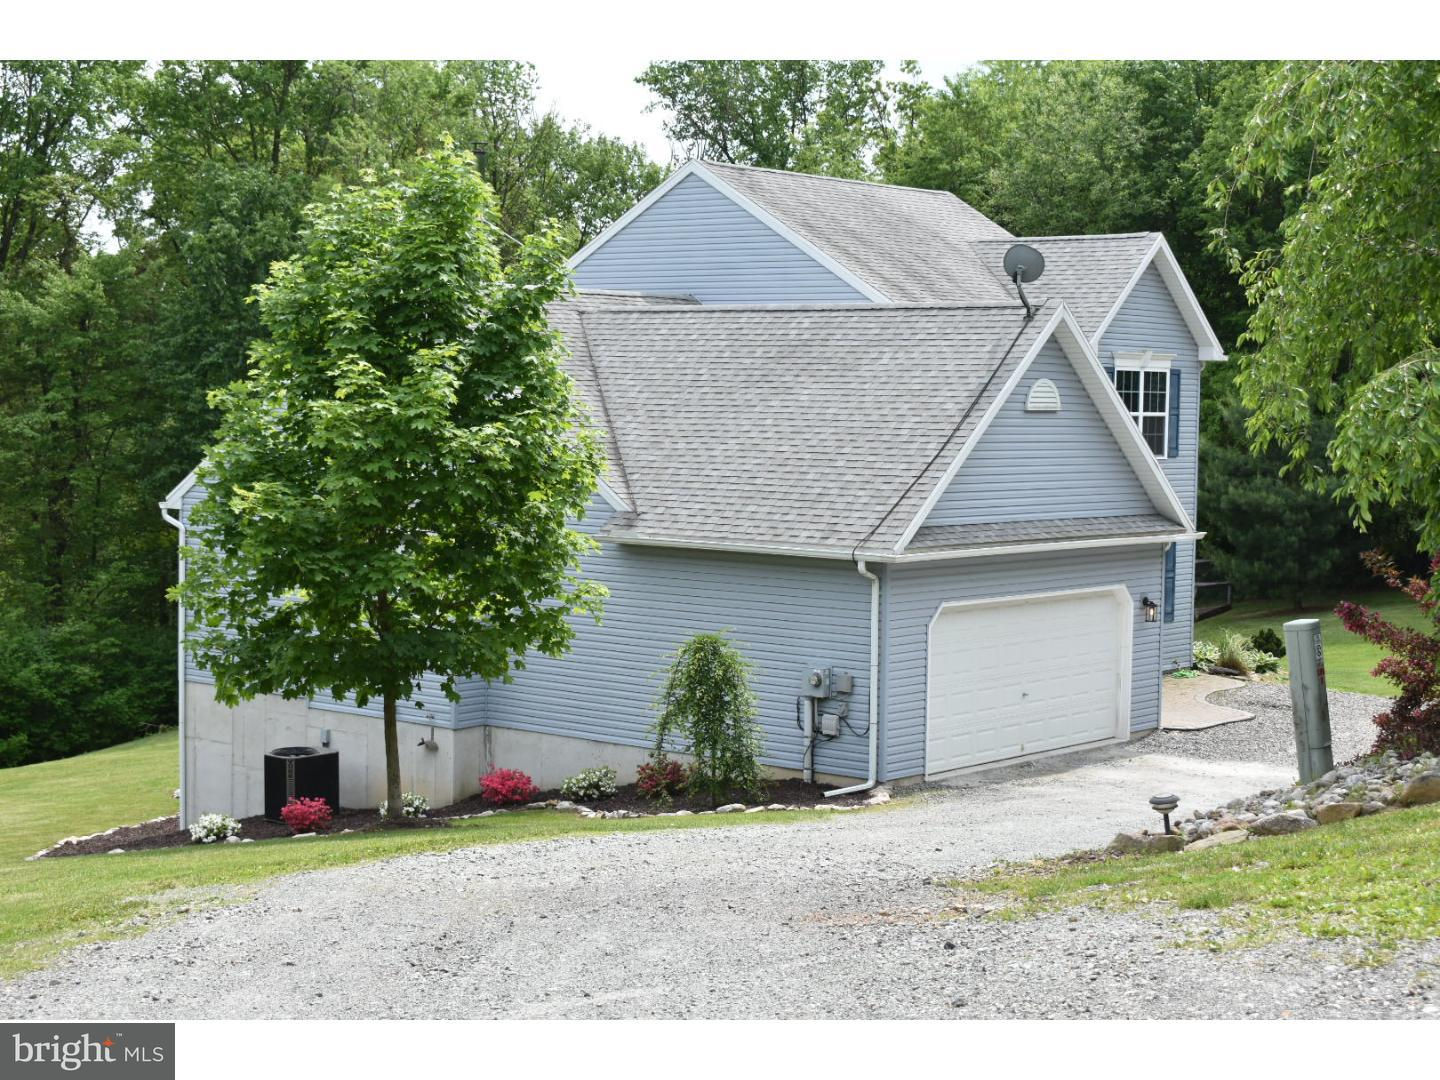 2014 EVERGREEN DR, TAMAQUA - Listed at $249,000, TAMAQUA